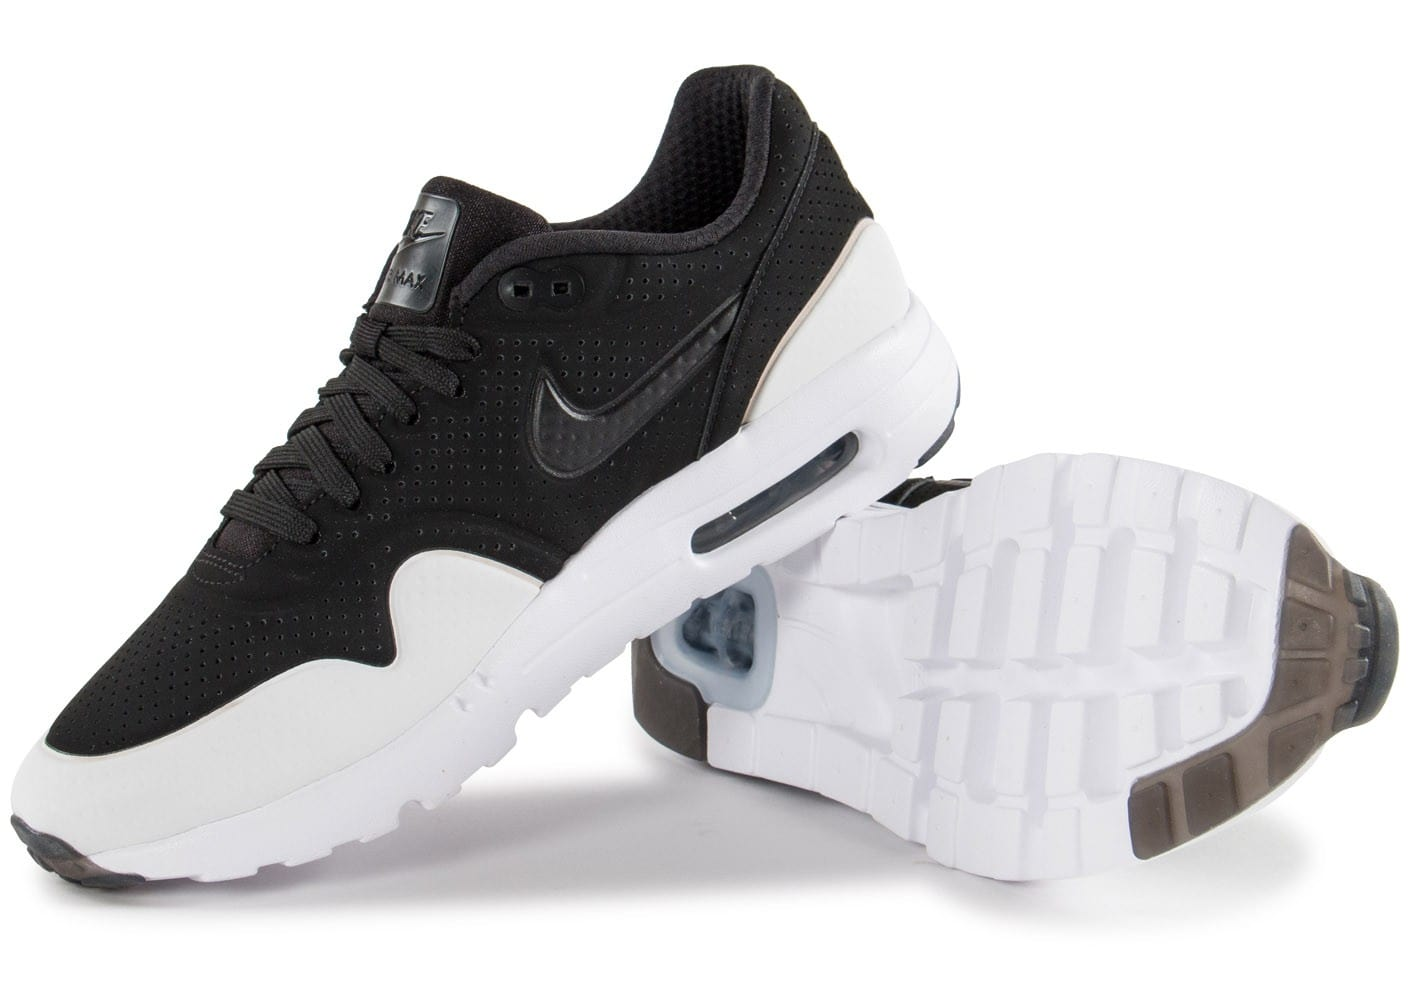 Chaussures Nike Moire Noire Ultra 1 Air Max Blanche Baskets Et TFKJl1c